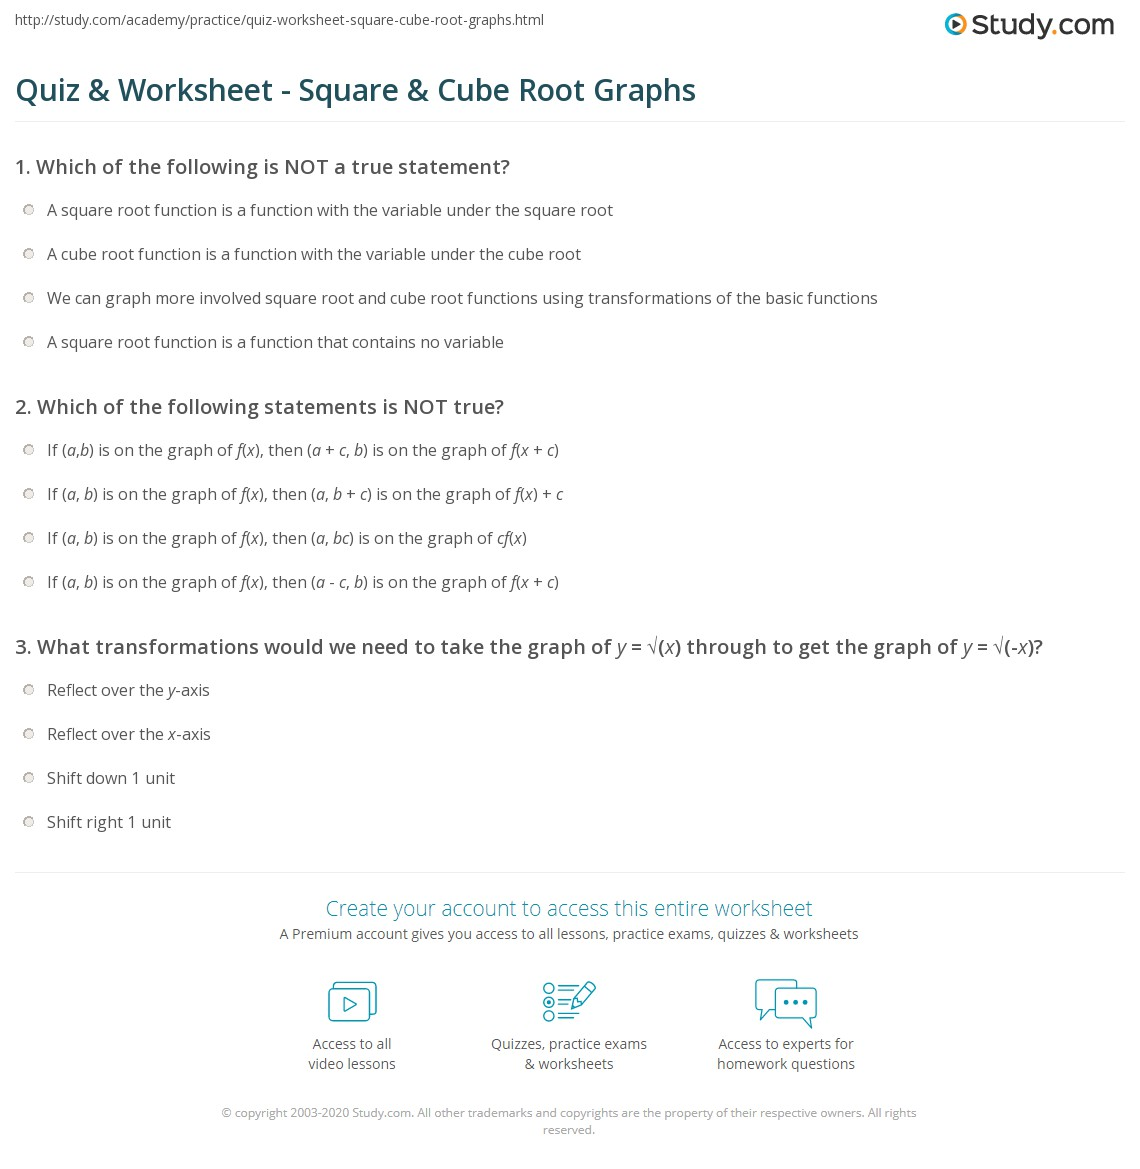 Quiz Worksheet Square Cube Root Graphs – Graphing Square Root Functions Worksheet